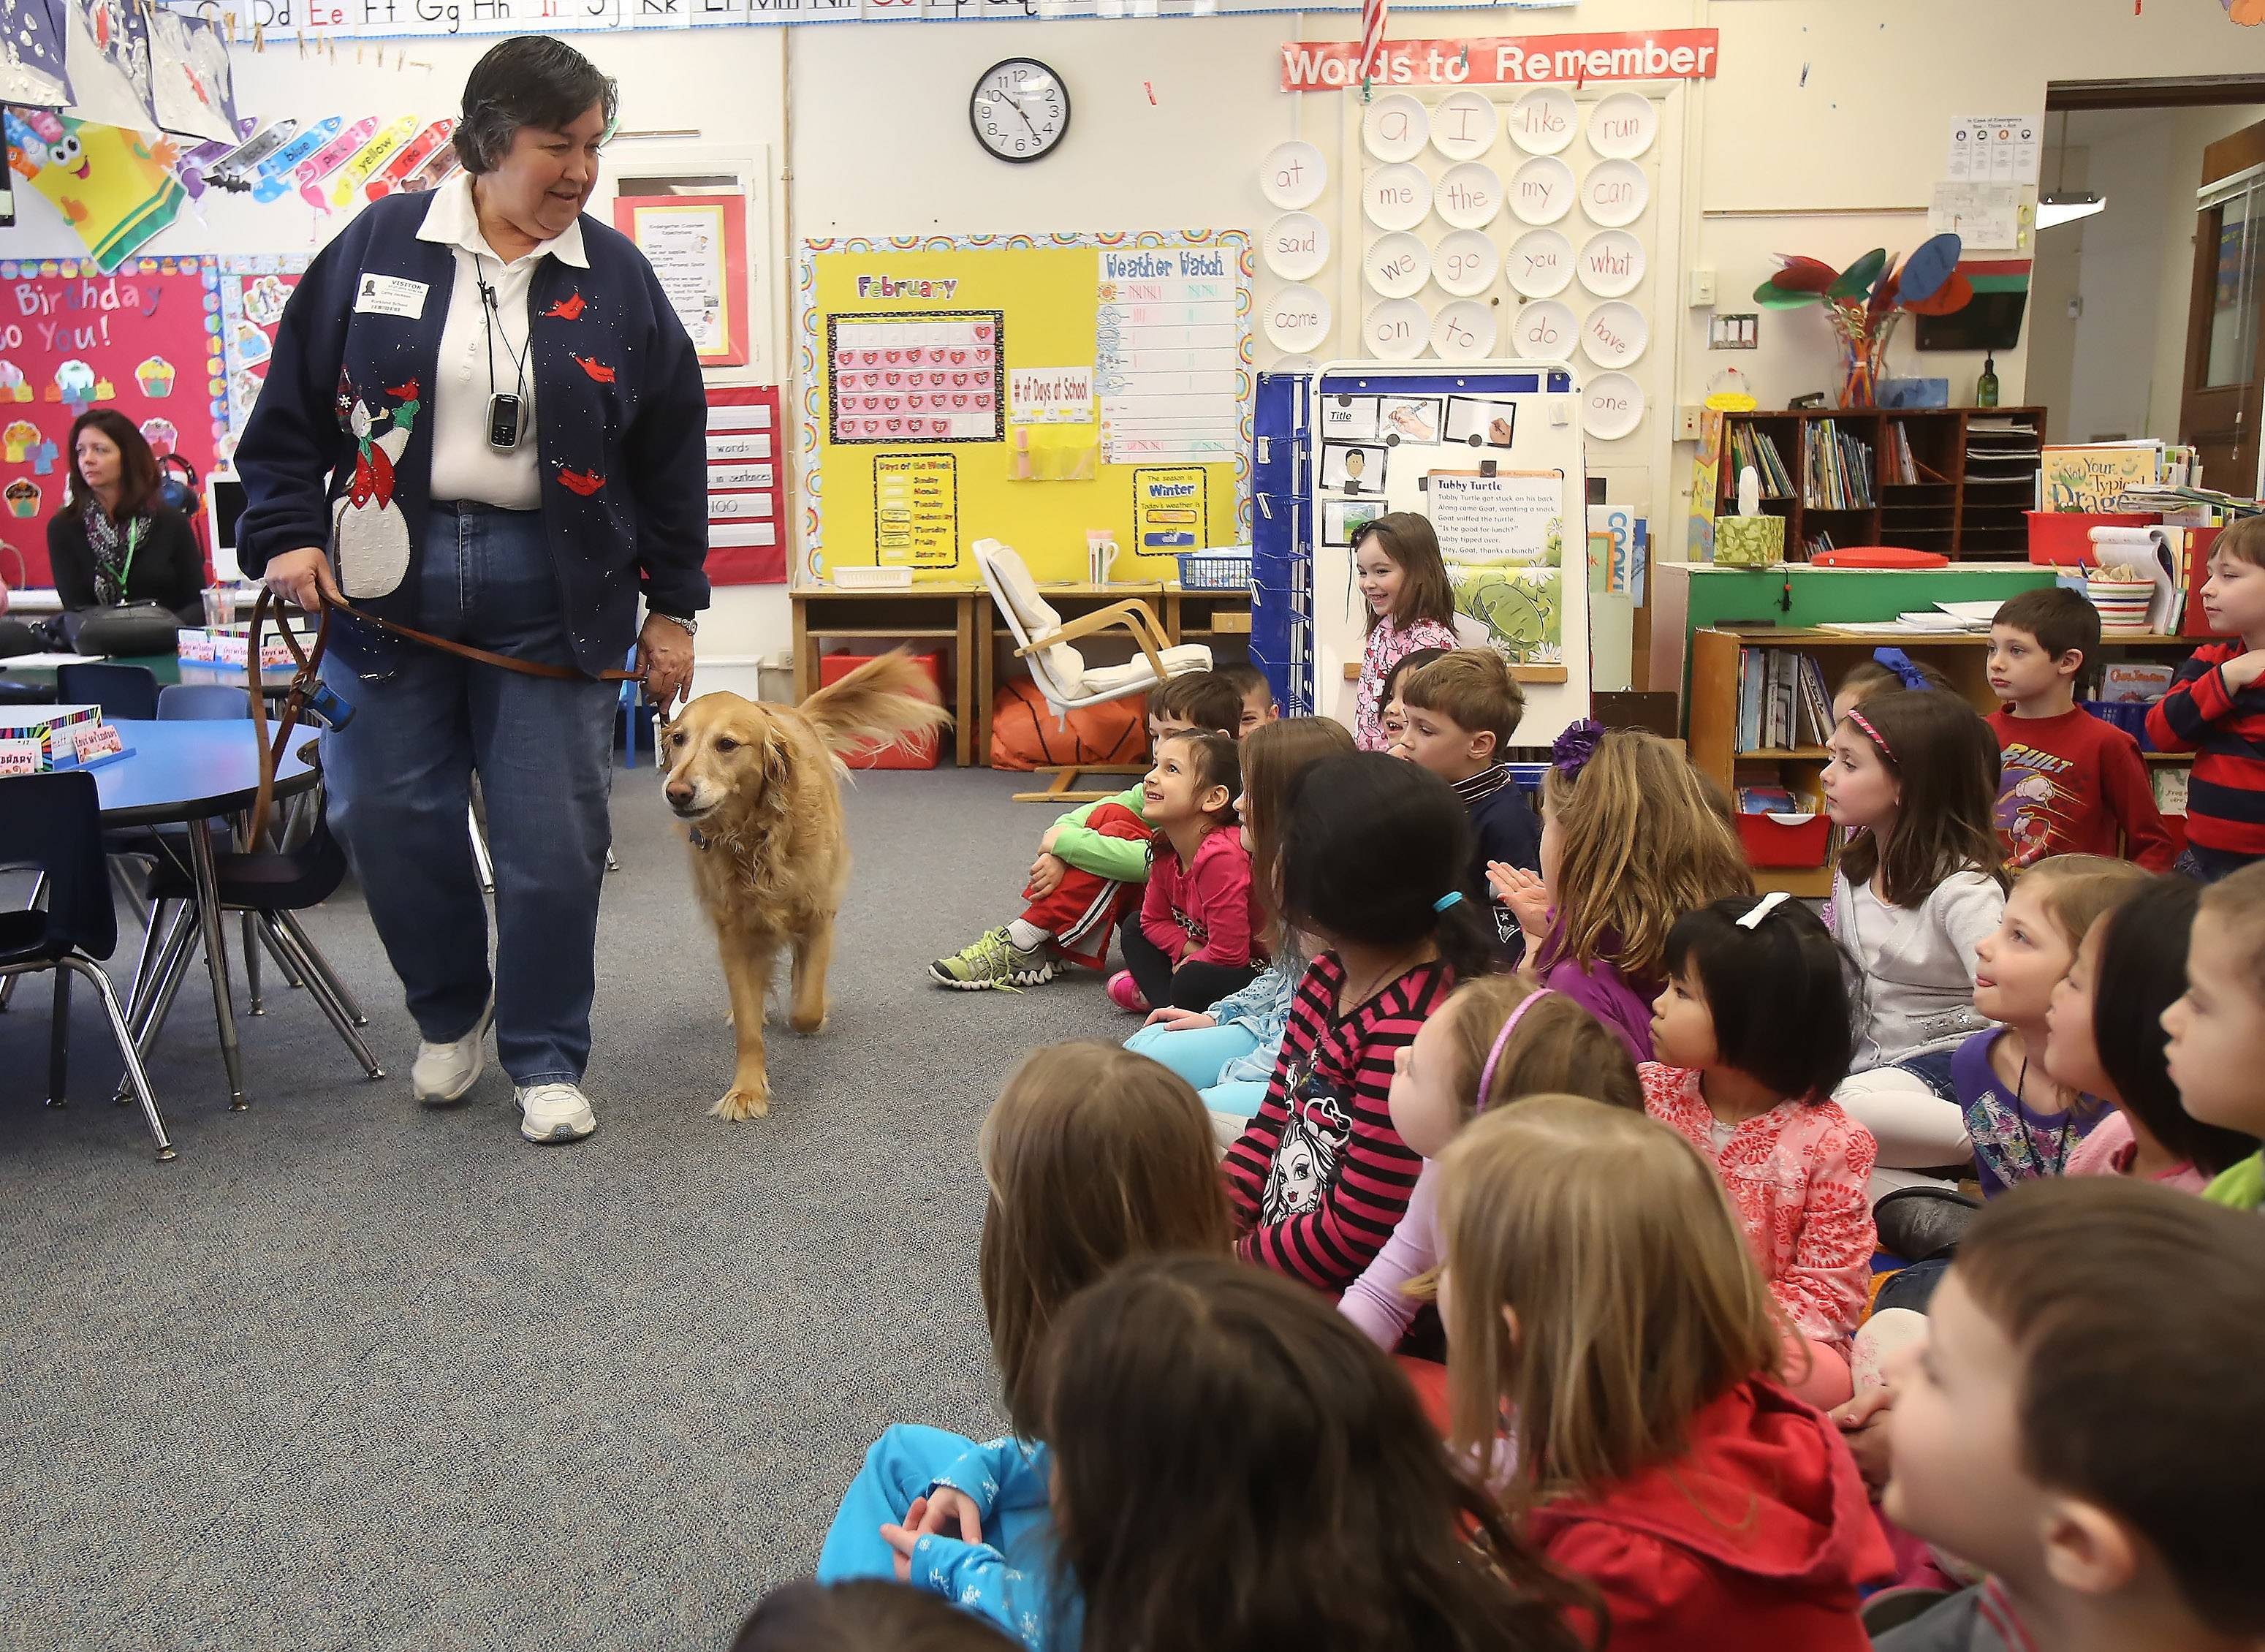 Students learn about the work done by therapy dog, Payton, a golden retriever, from Cathy Jackson during Kindergarten Career Fair Day at Rockland School in Libertyville. Kindergartners learned about jobs from a librarian, a firefighter, a human resources director and a therapy dog handler.